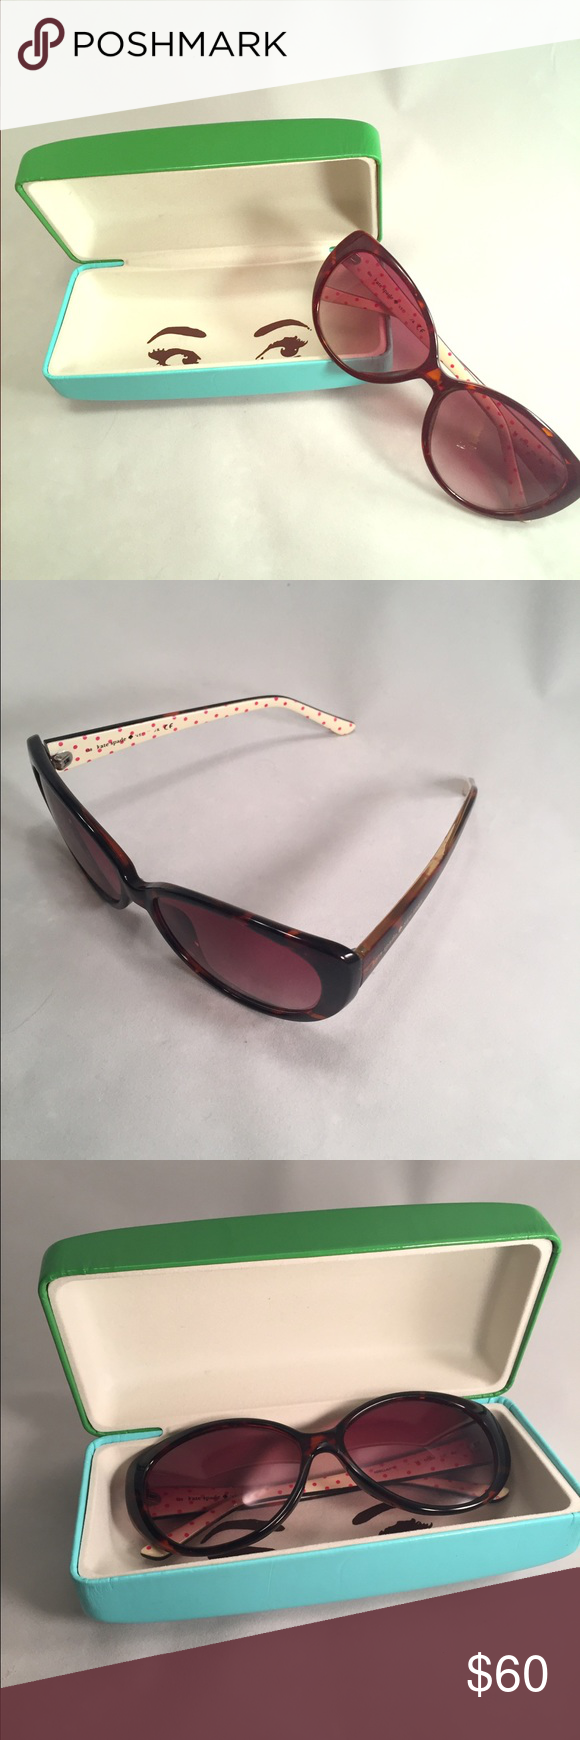 Kate Spade ♠️ Adella Tortoise Polka Dot Sunglasses Hardly worn just too small for my face. Retails for $125. Please make an offer! kate spade Accessories Sunglasses